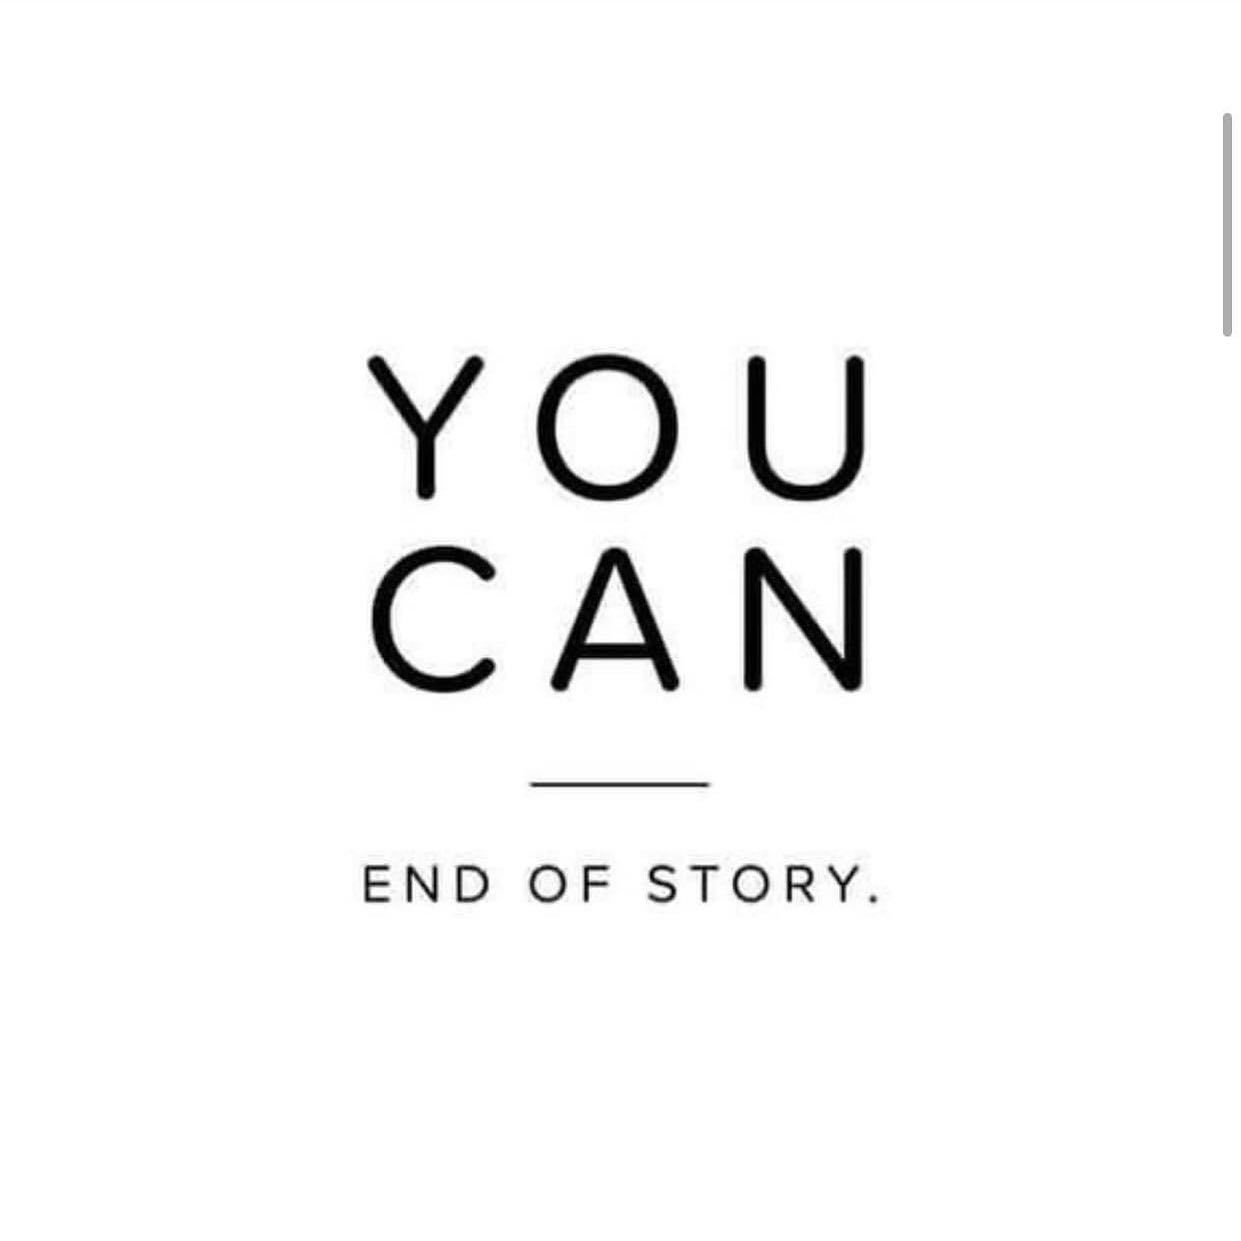 """Heather Dulaney on Instagram: """"Yes You CAN!!! Stop Doubting Yourself And Go Get It!!! #youcan"""""""